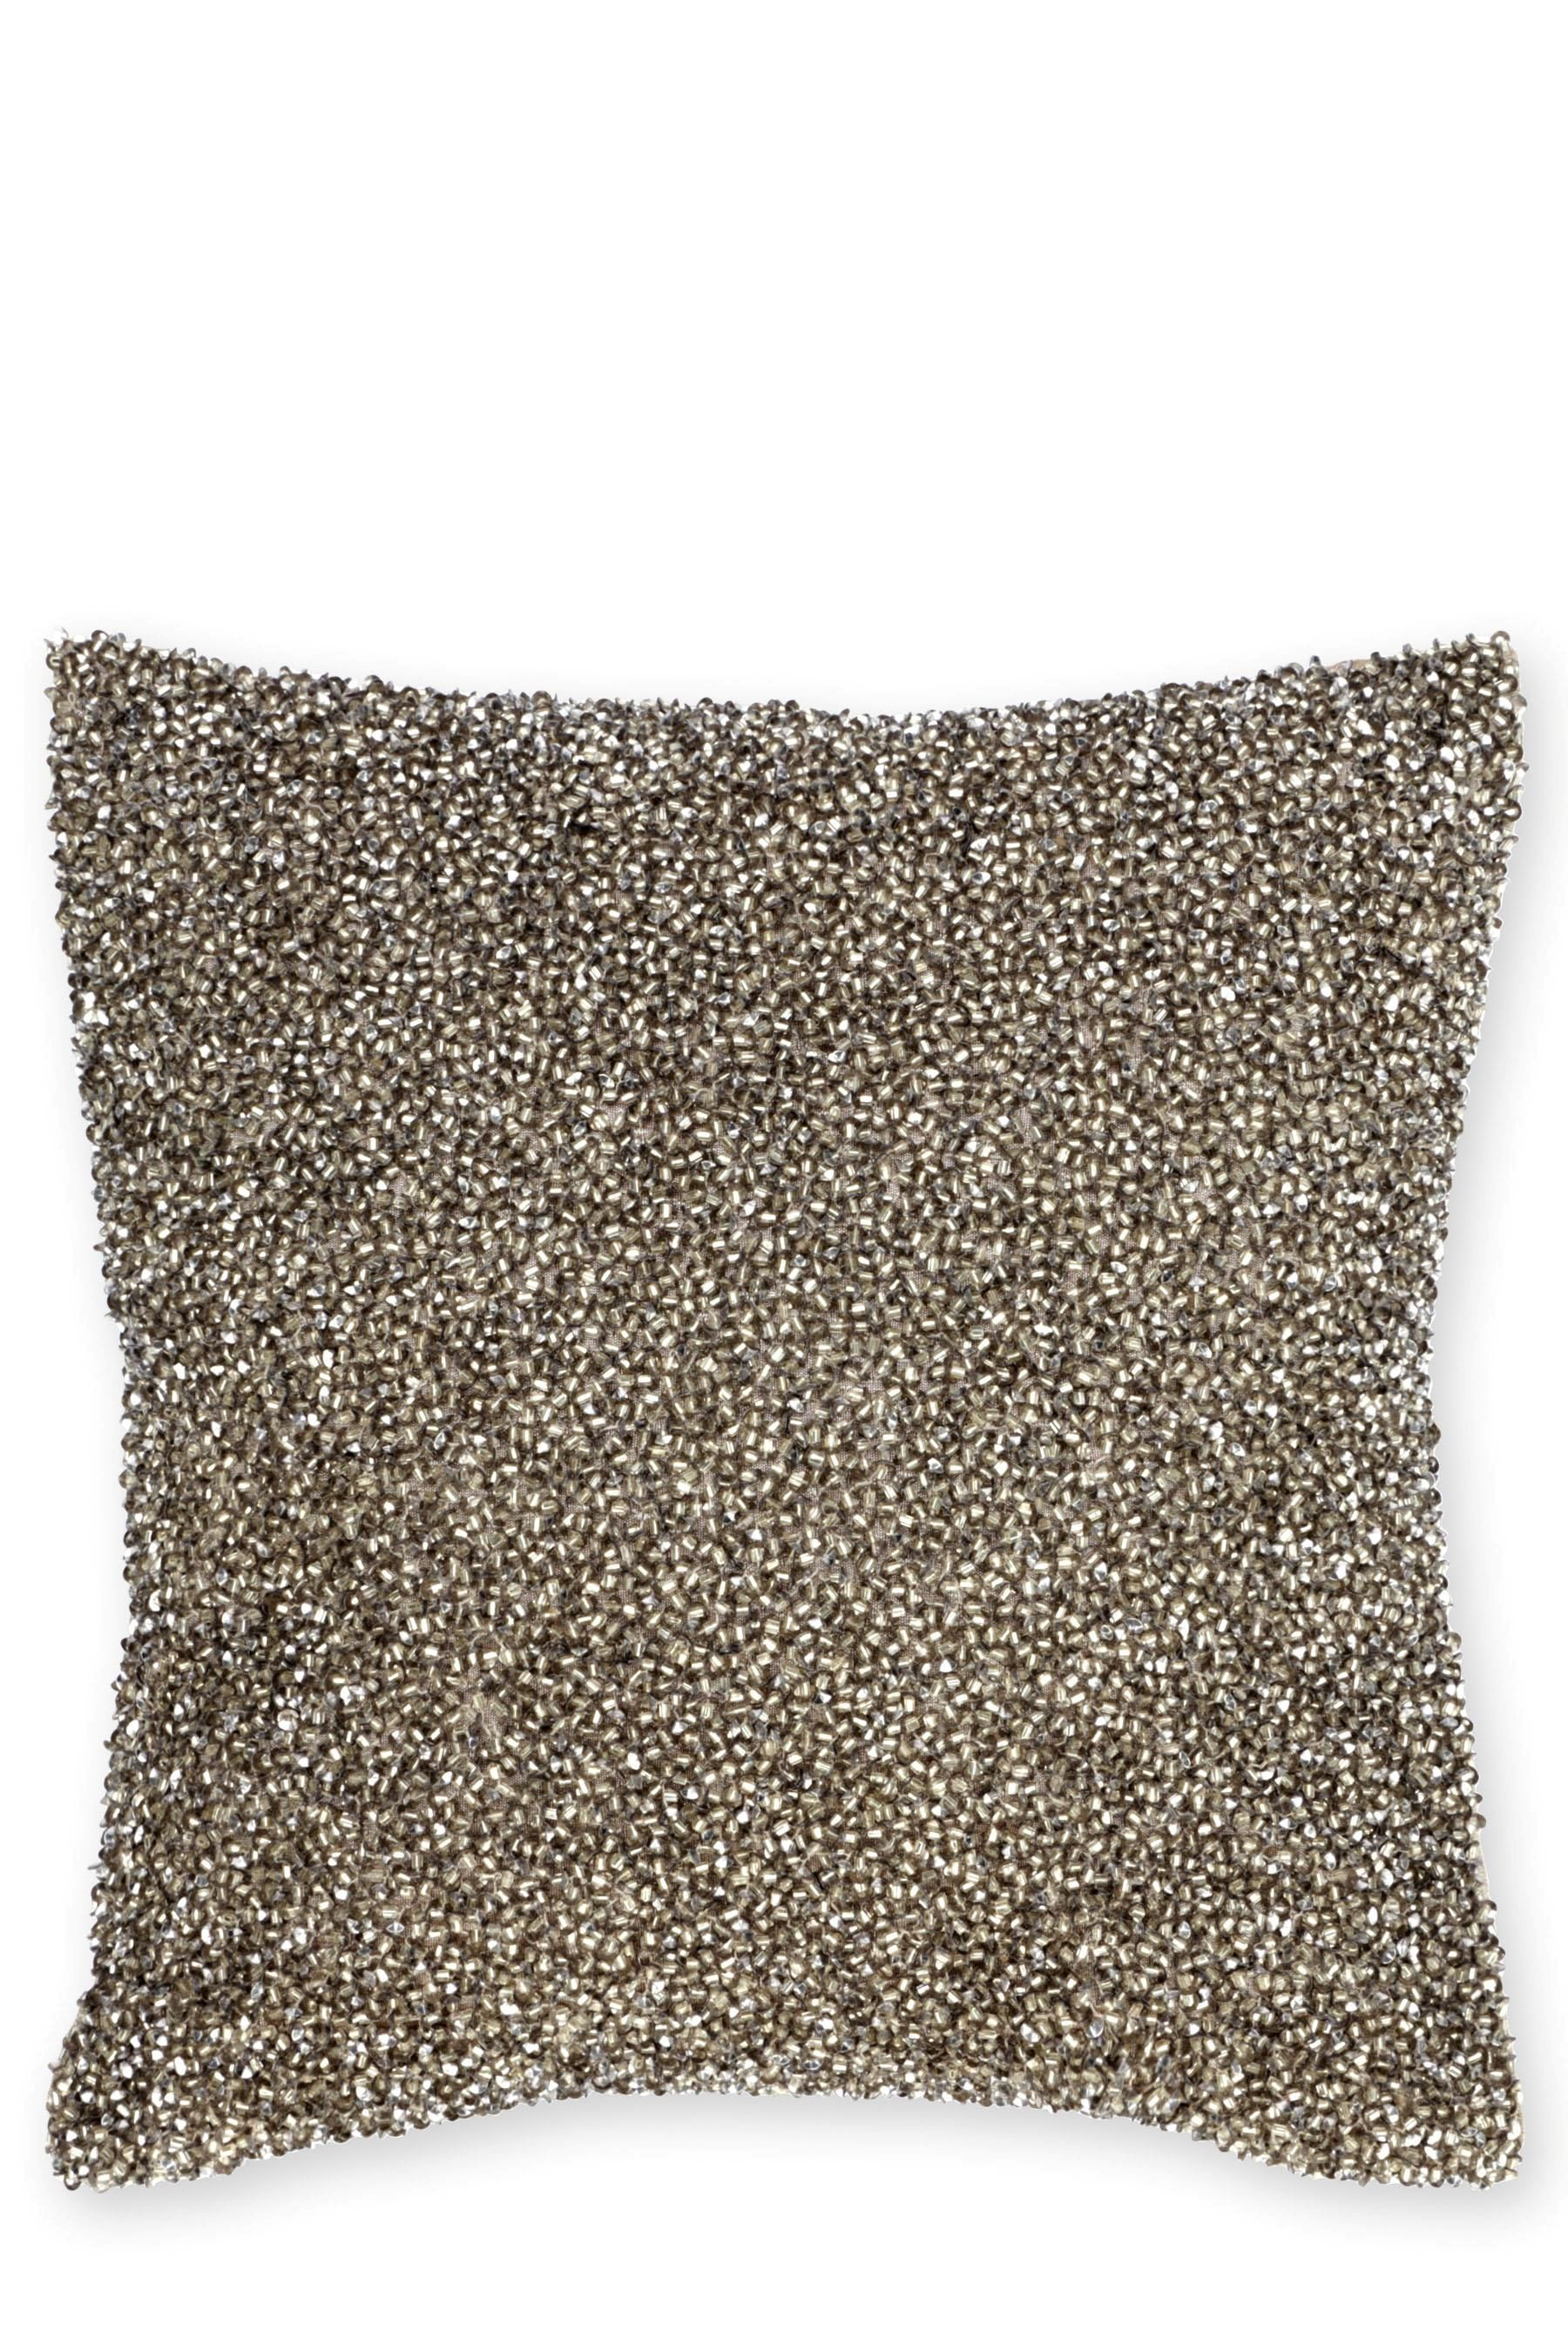 Sofa Pads Uk Ashley Leather And Loveseat Buy Embellished Cushion From The Next Online Shop Ideas For